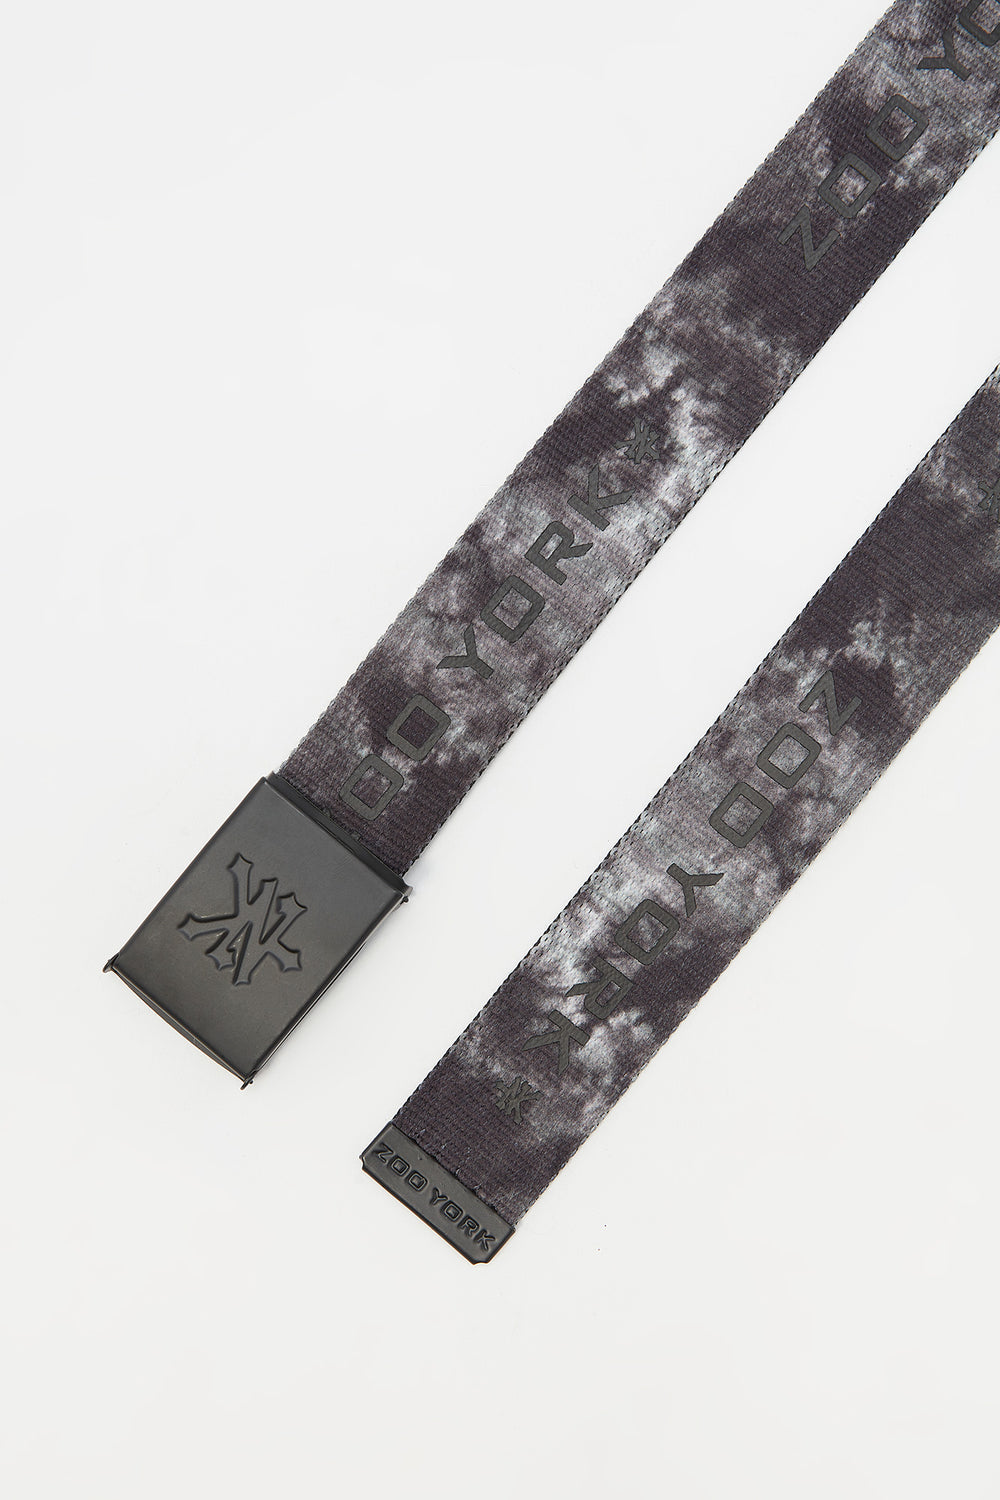 Zoo York Mens Tie Dye Belt Black